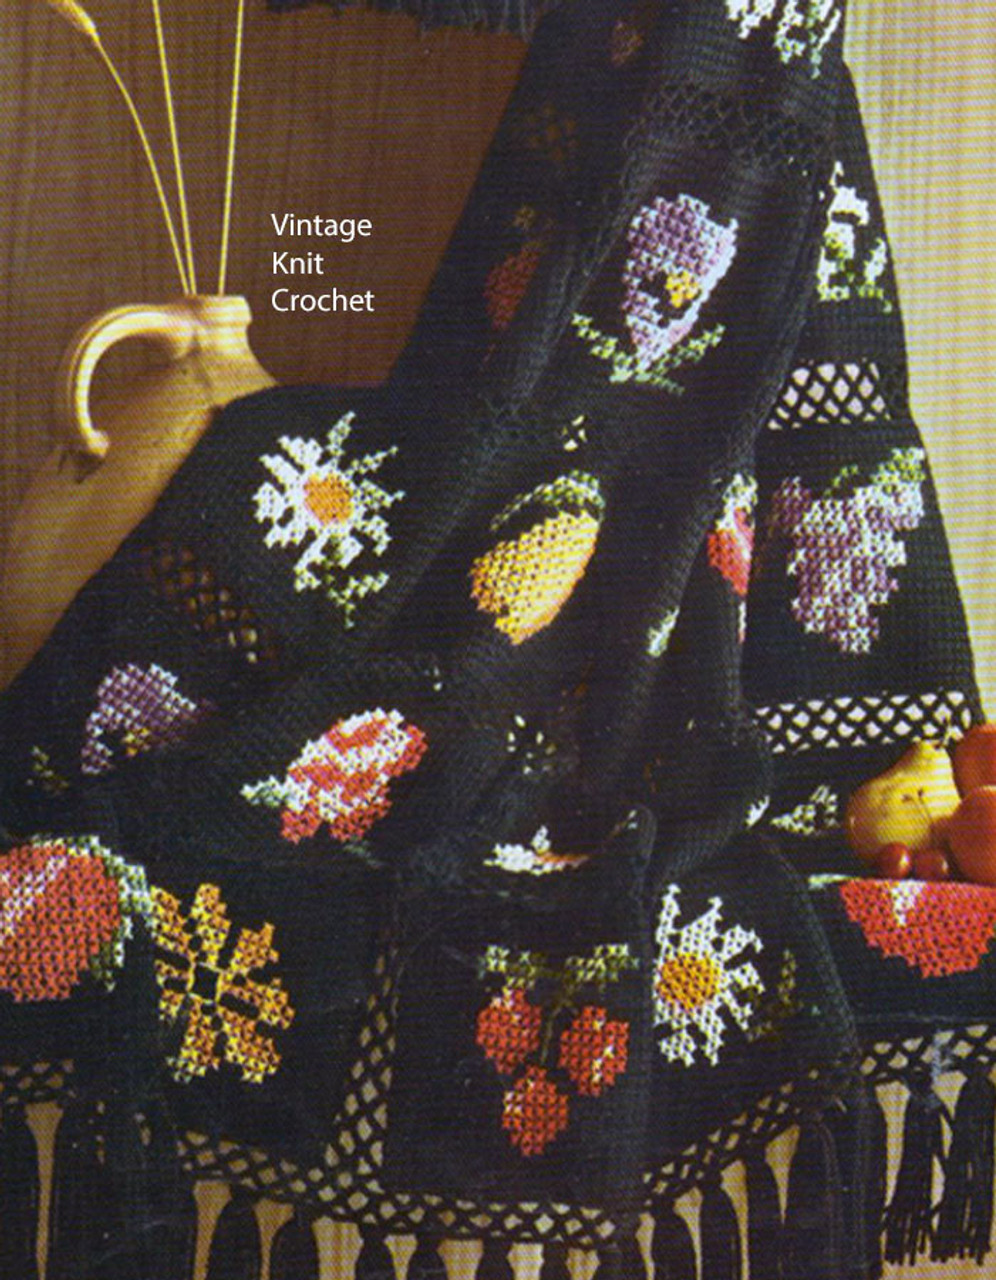 Vintage Fruit Flowers Crochet Tapestry Afghan Pattern